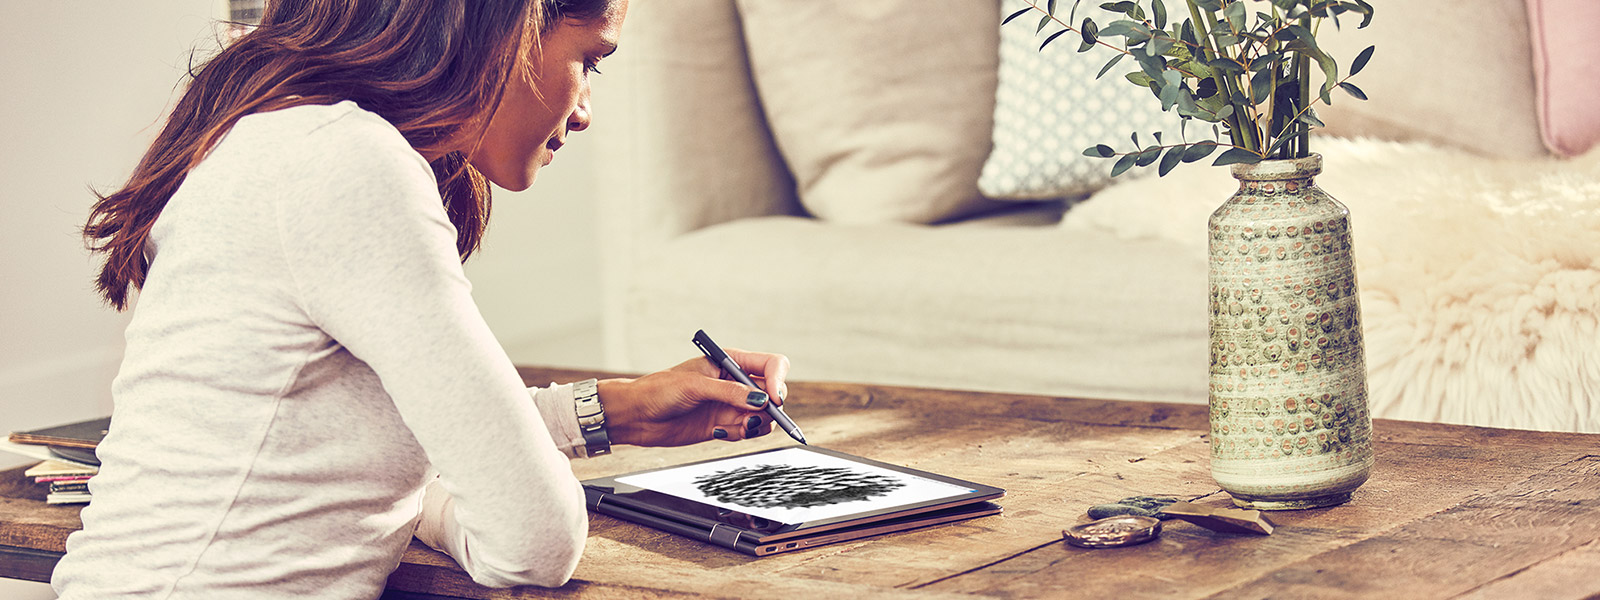 A woman using Windows Ink on an HP Spectre x360